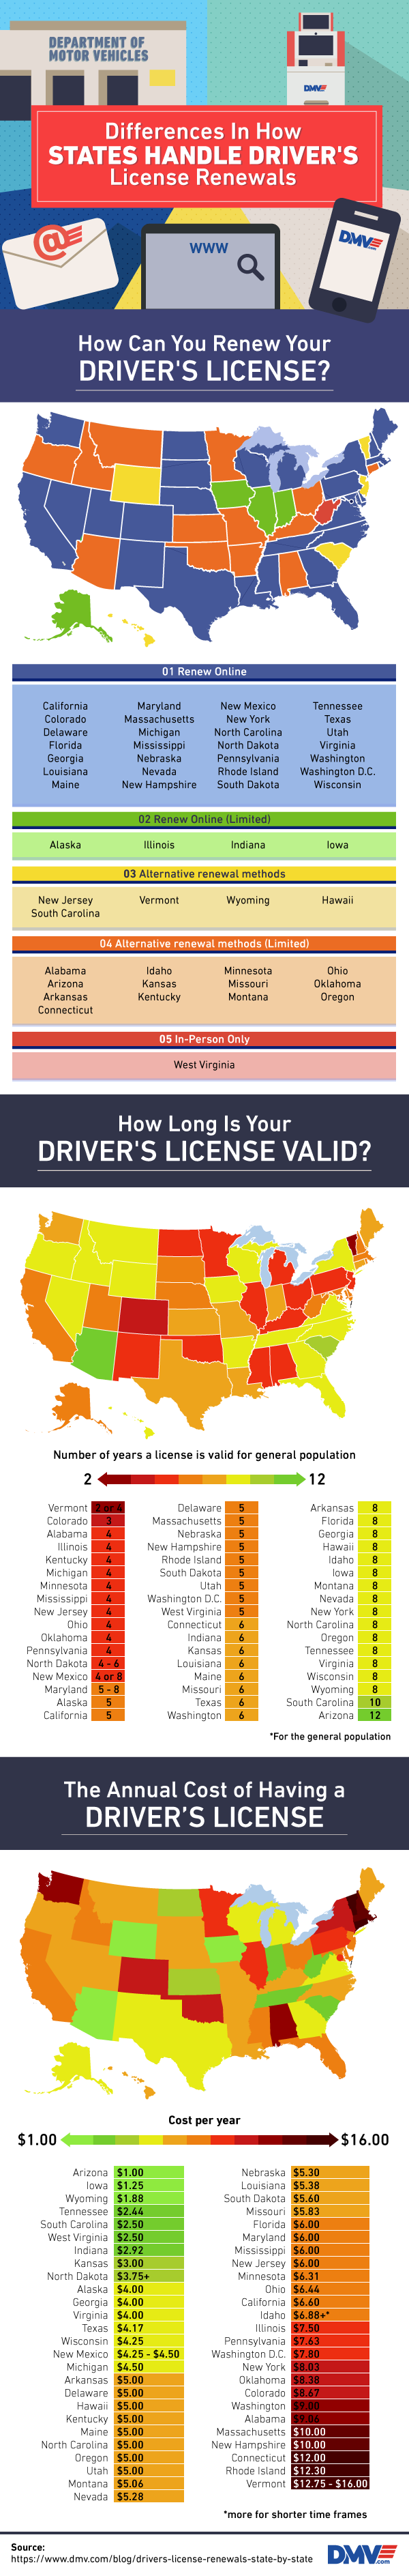 Florida Learners Permit >> State By State: Differences In How States Handle Driver's ...